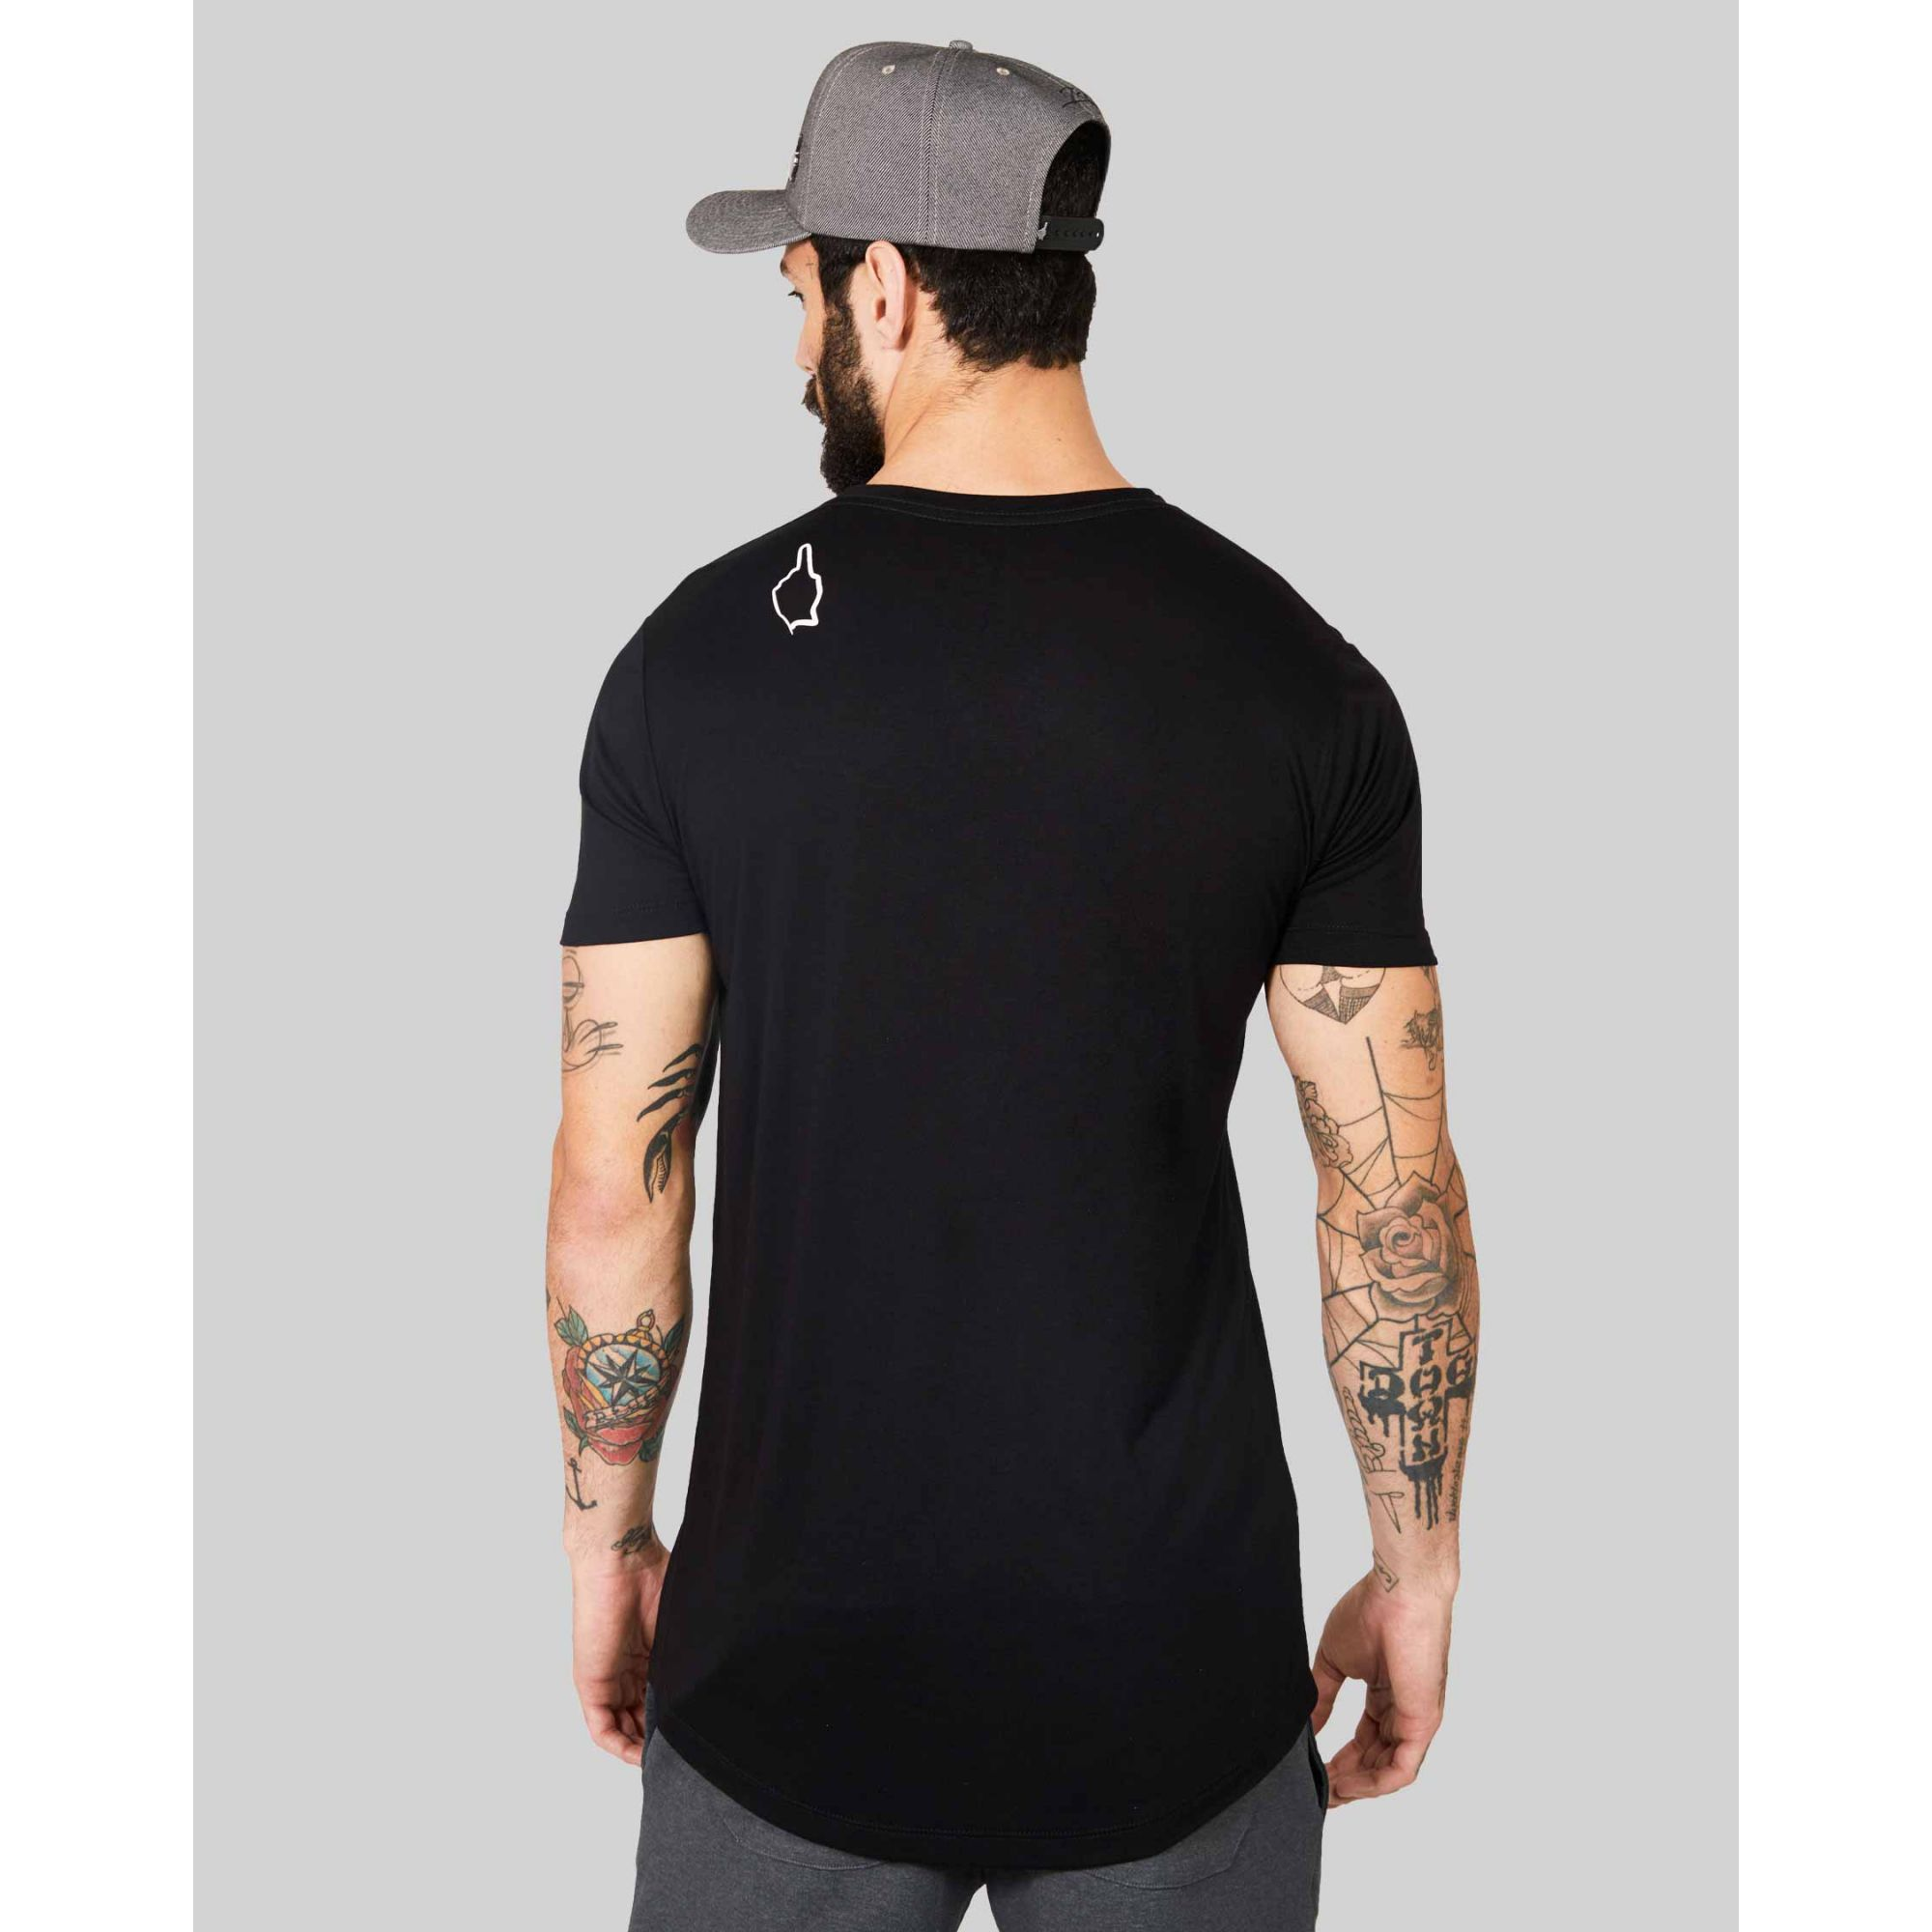 Camiseta Buh FaithFull Black